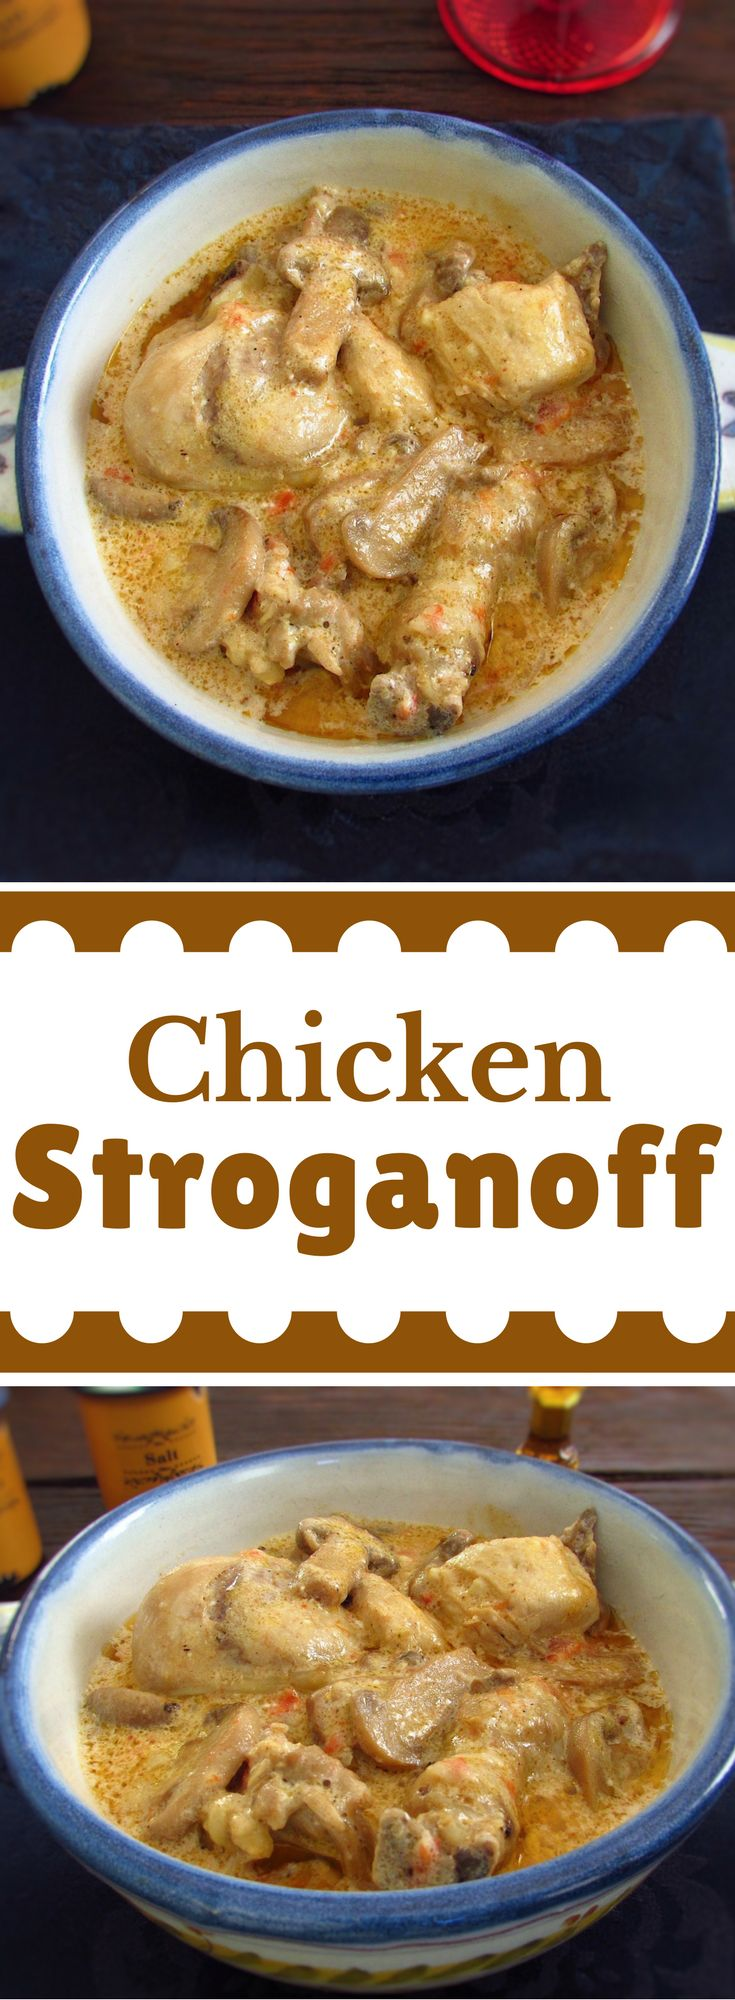 Chicken Stroganoff | Food From Portugal. To vary your chicken recipes we recommend this chicken stroganoff recipe. A very tasty dish with a quite creamy sauce, a delight... #recipe #chicken #stroganoff